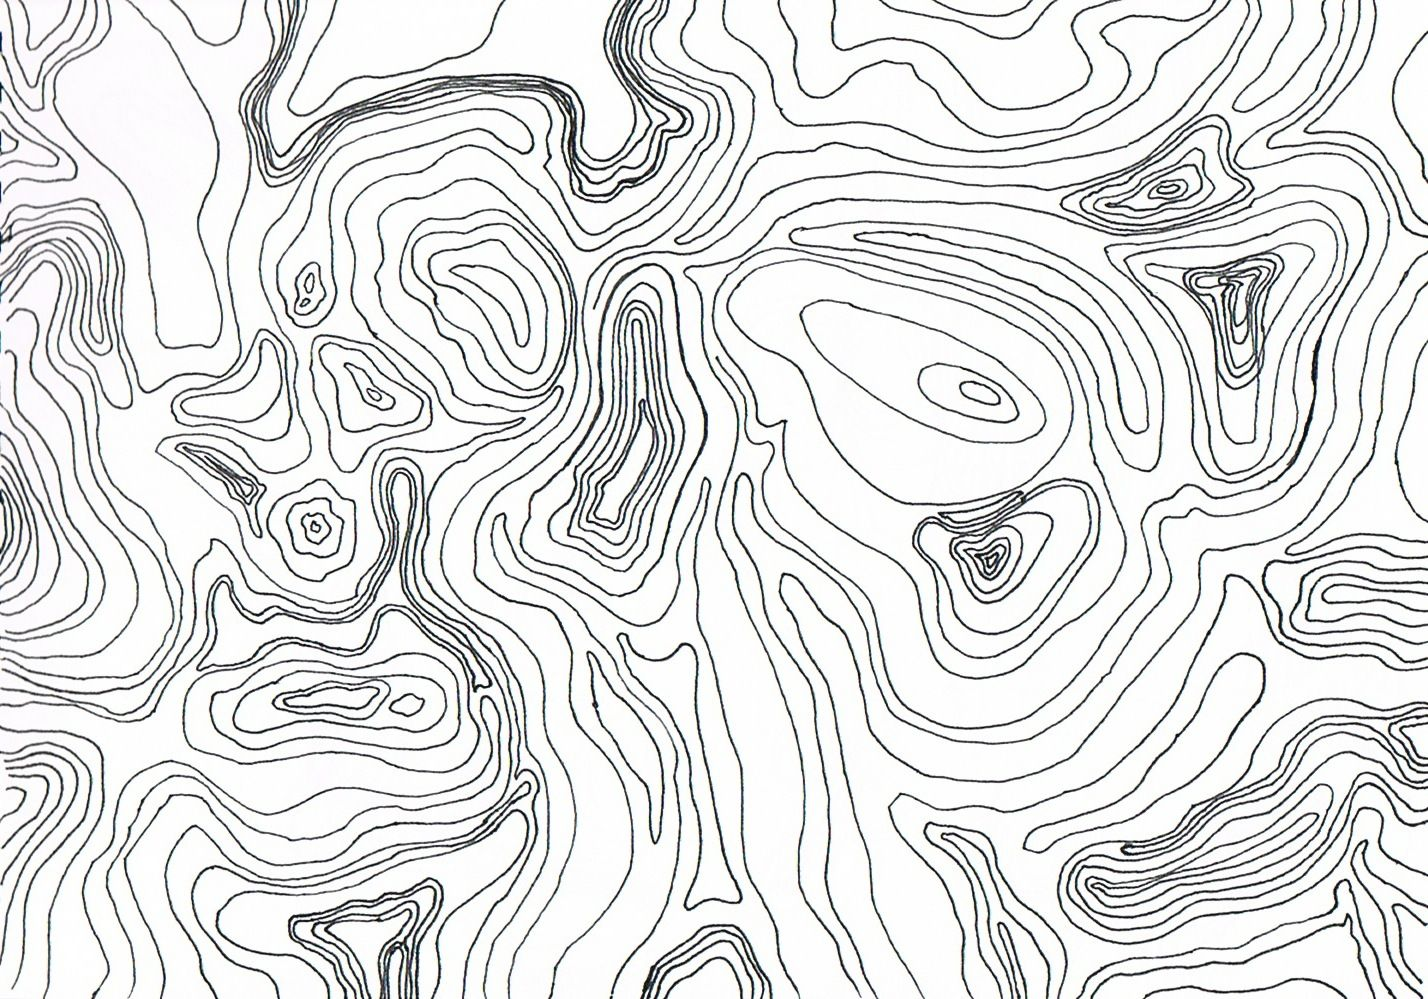 Topo clipart black and white royalty free library topographic map | art | Topographic map, Topography map, Map ... royalty free library